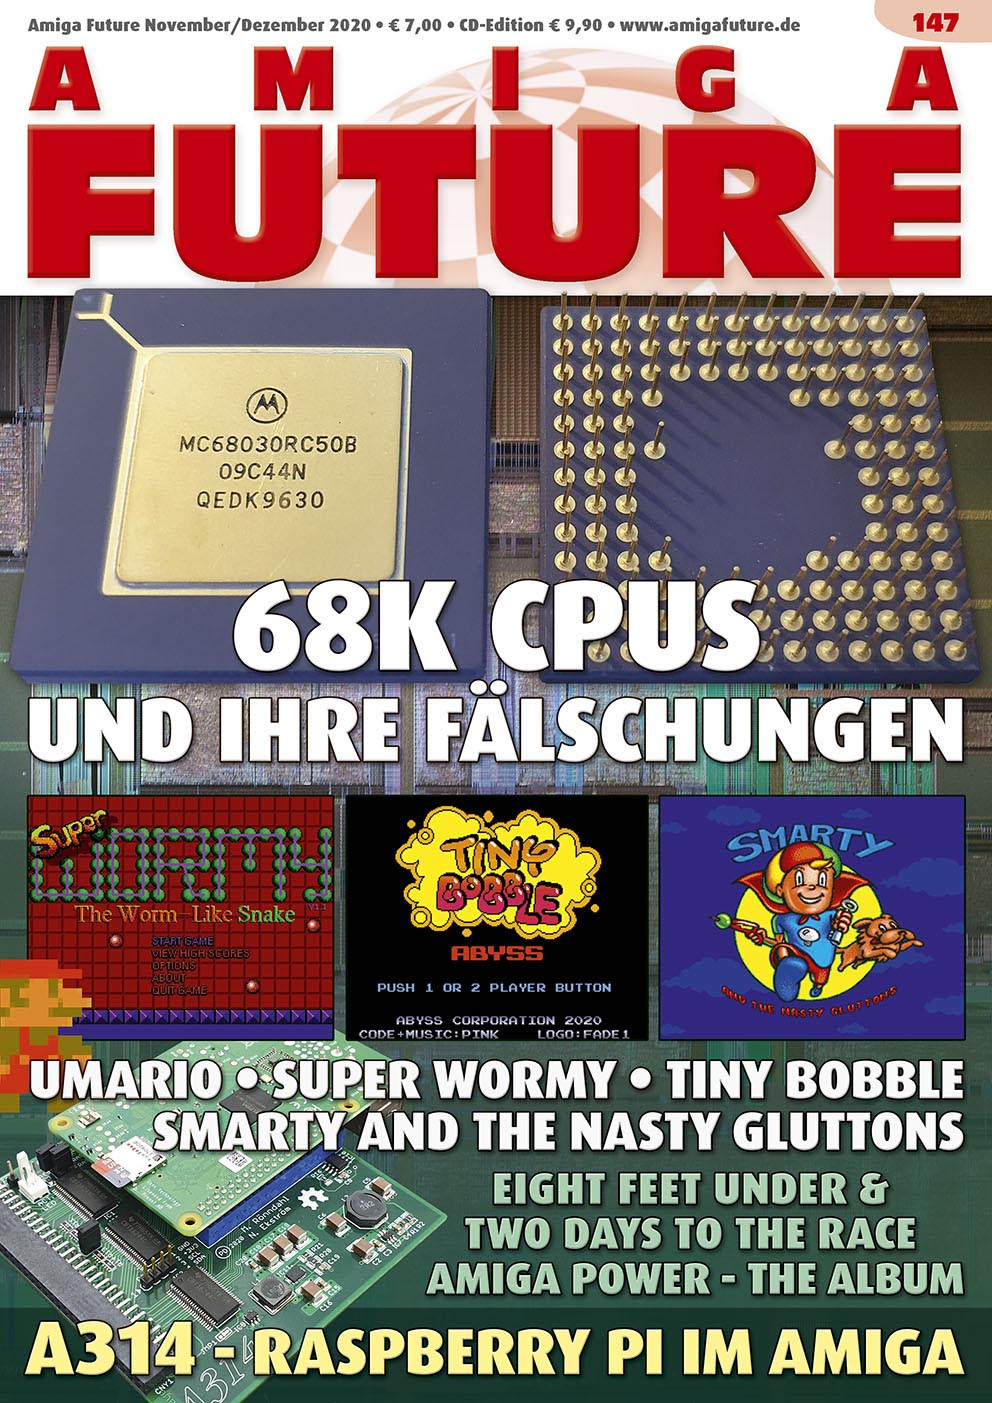 Amiga Future Issue 147